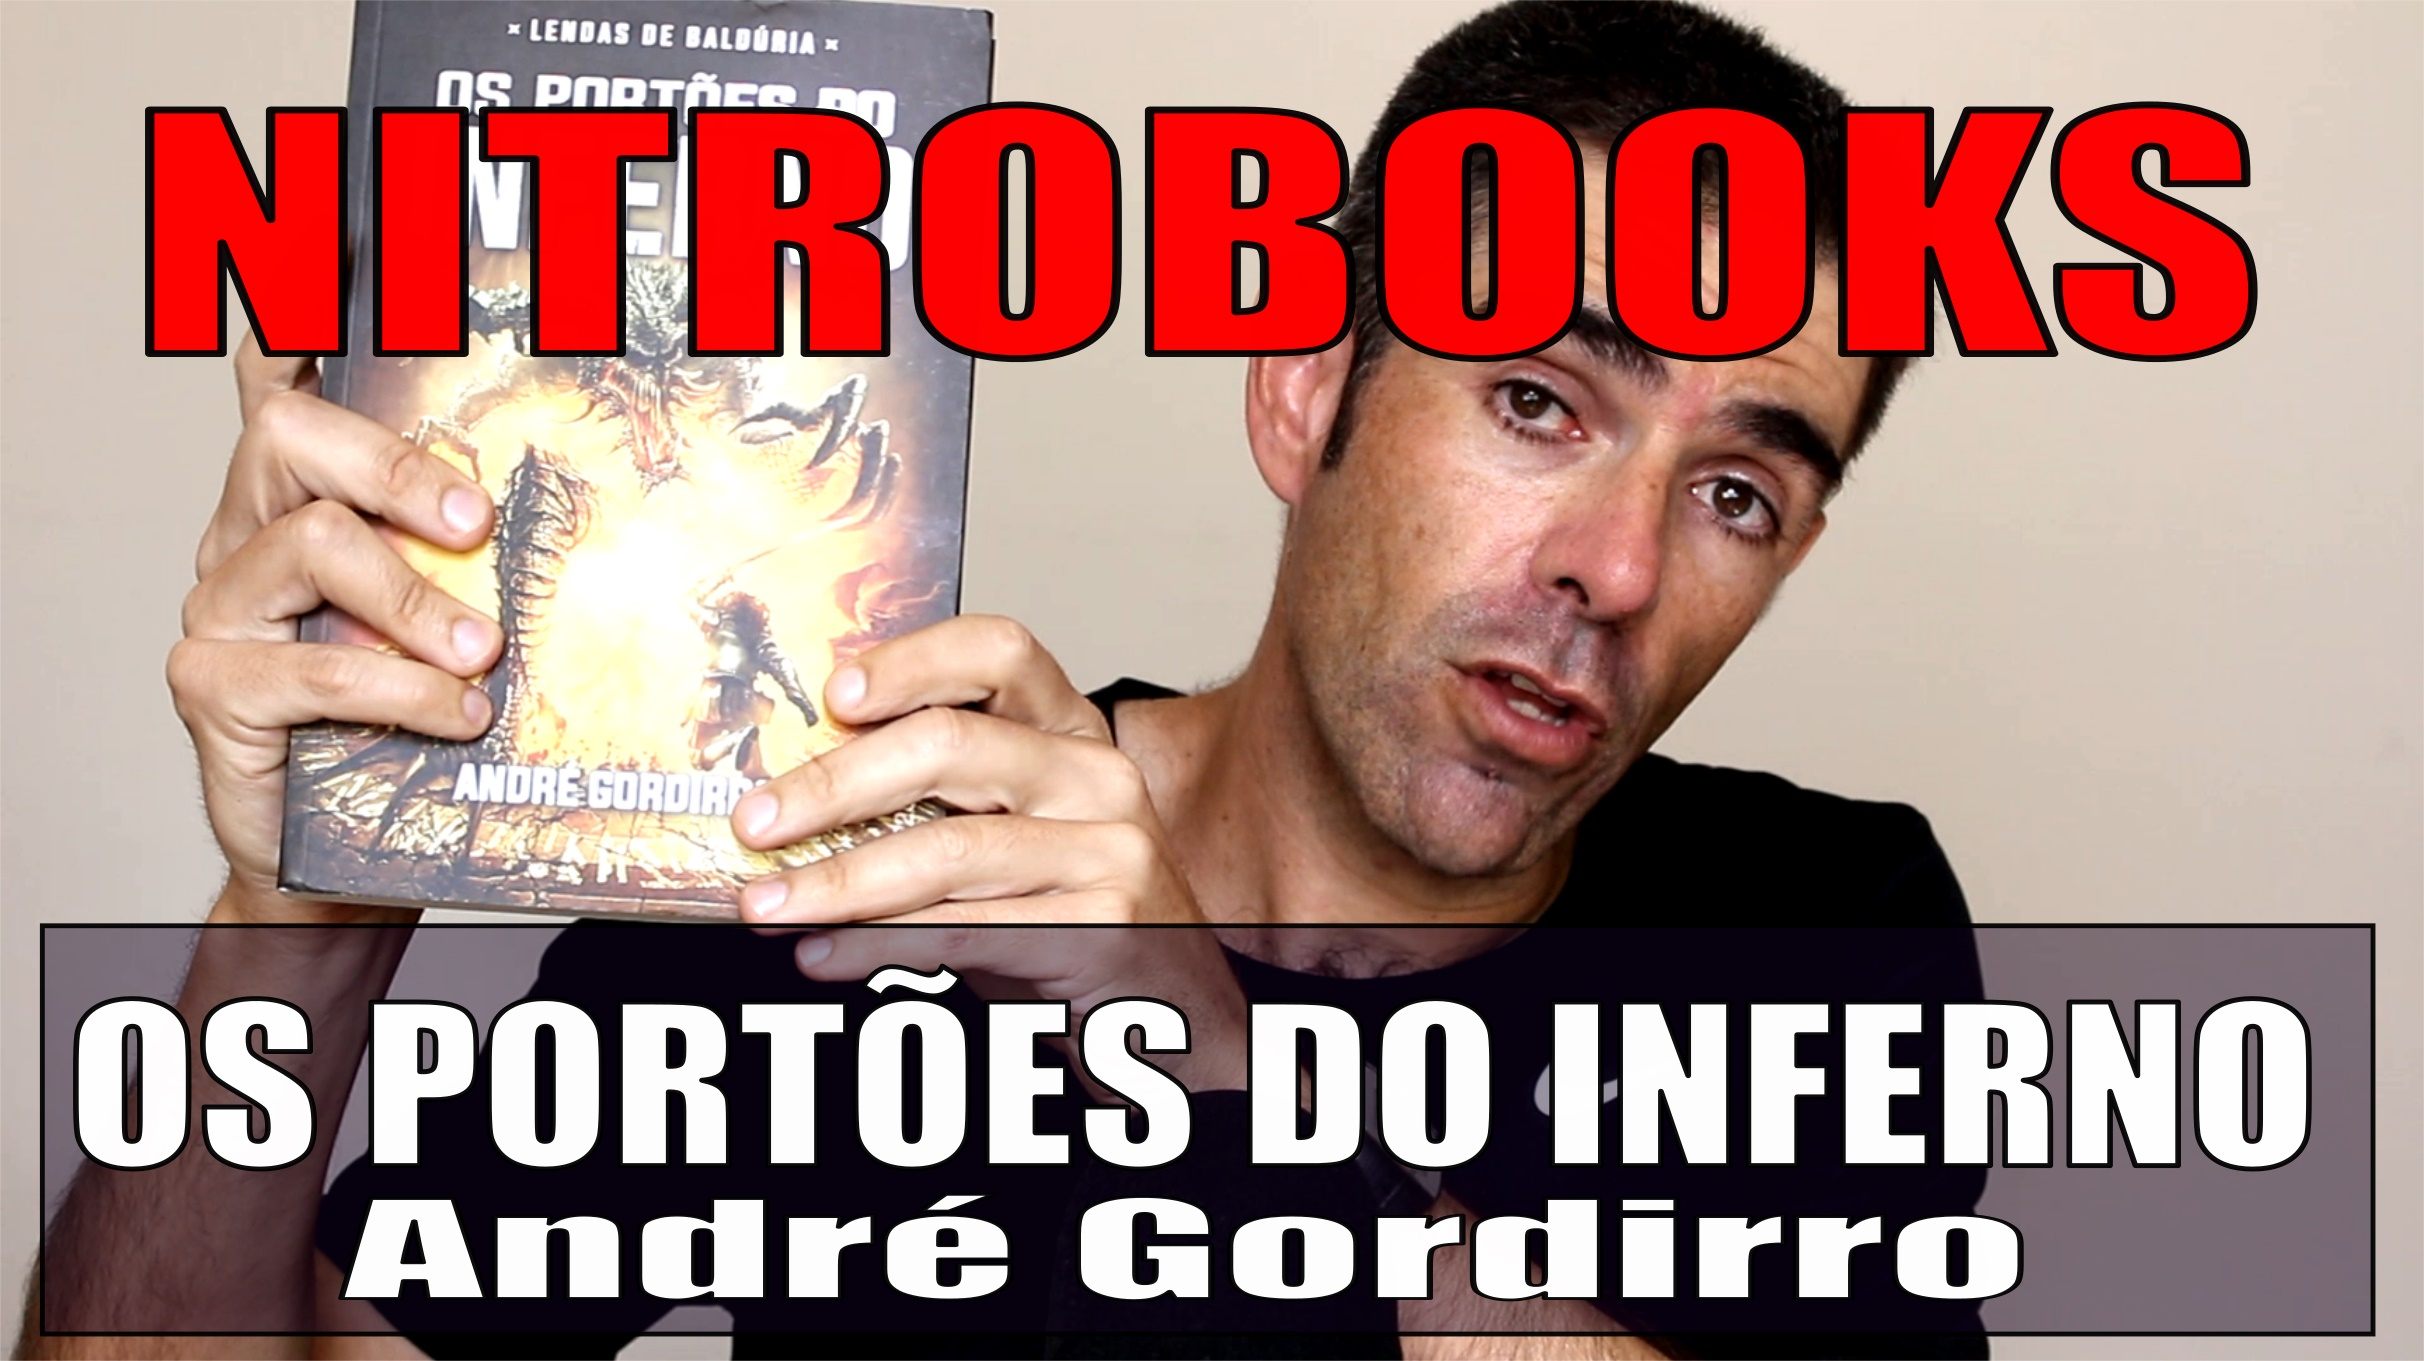 portoes do inferno JPG